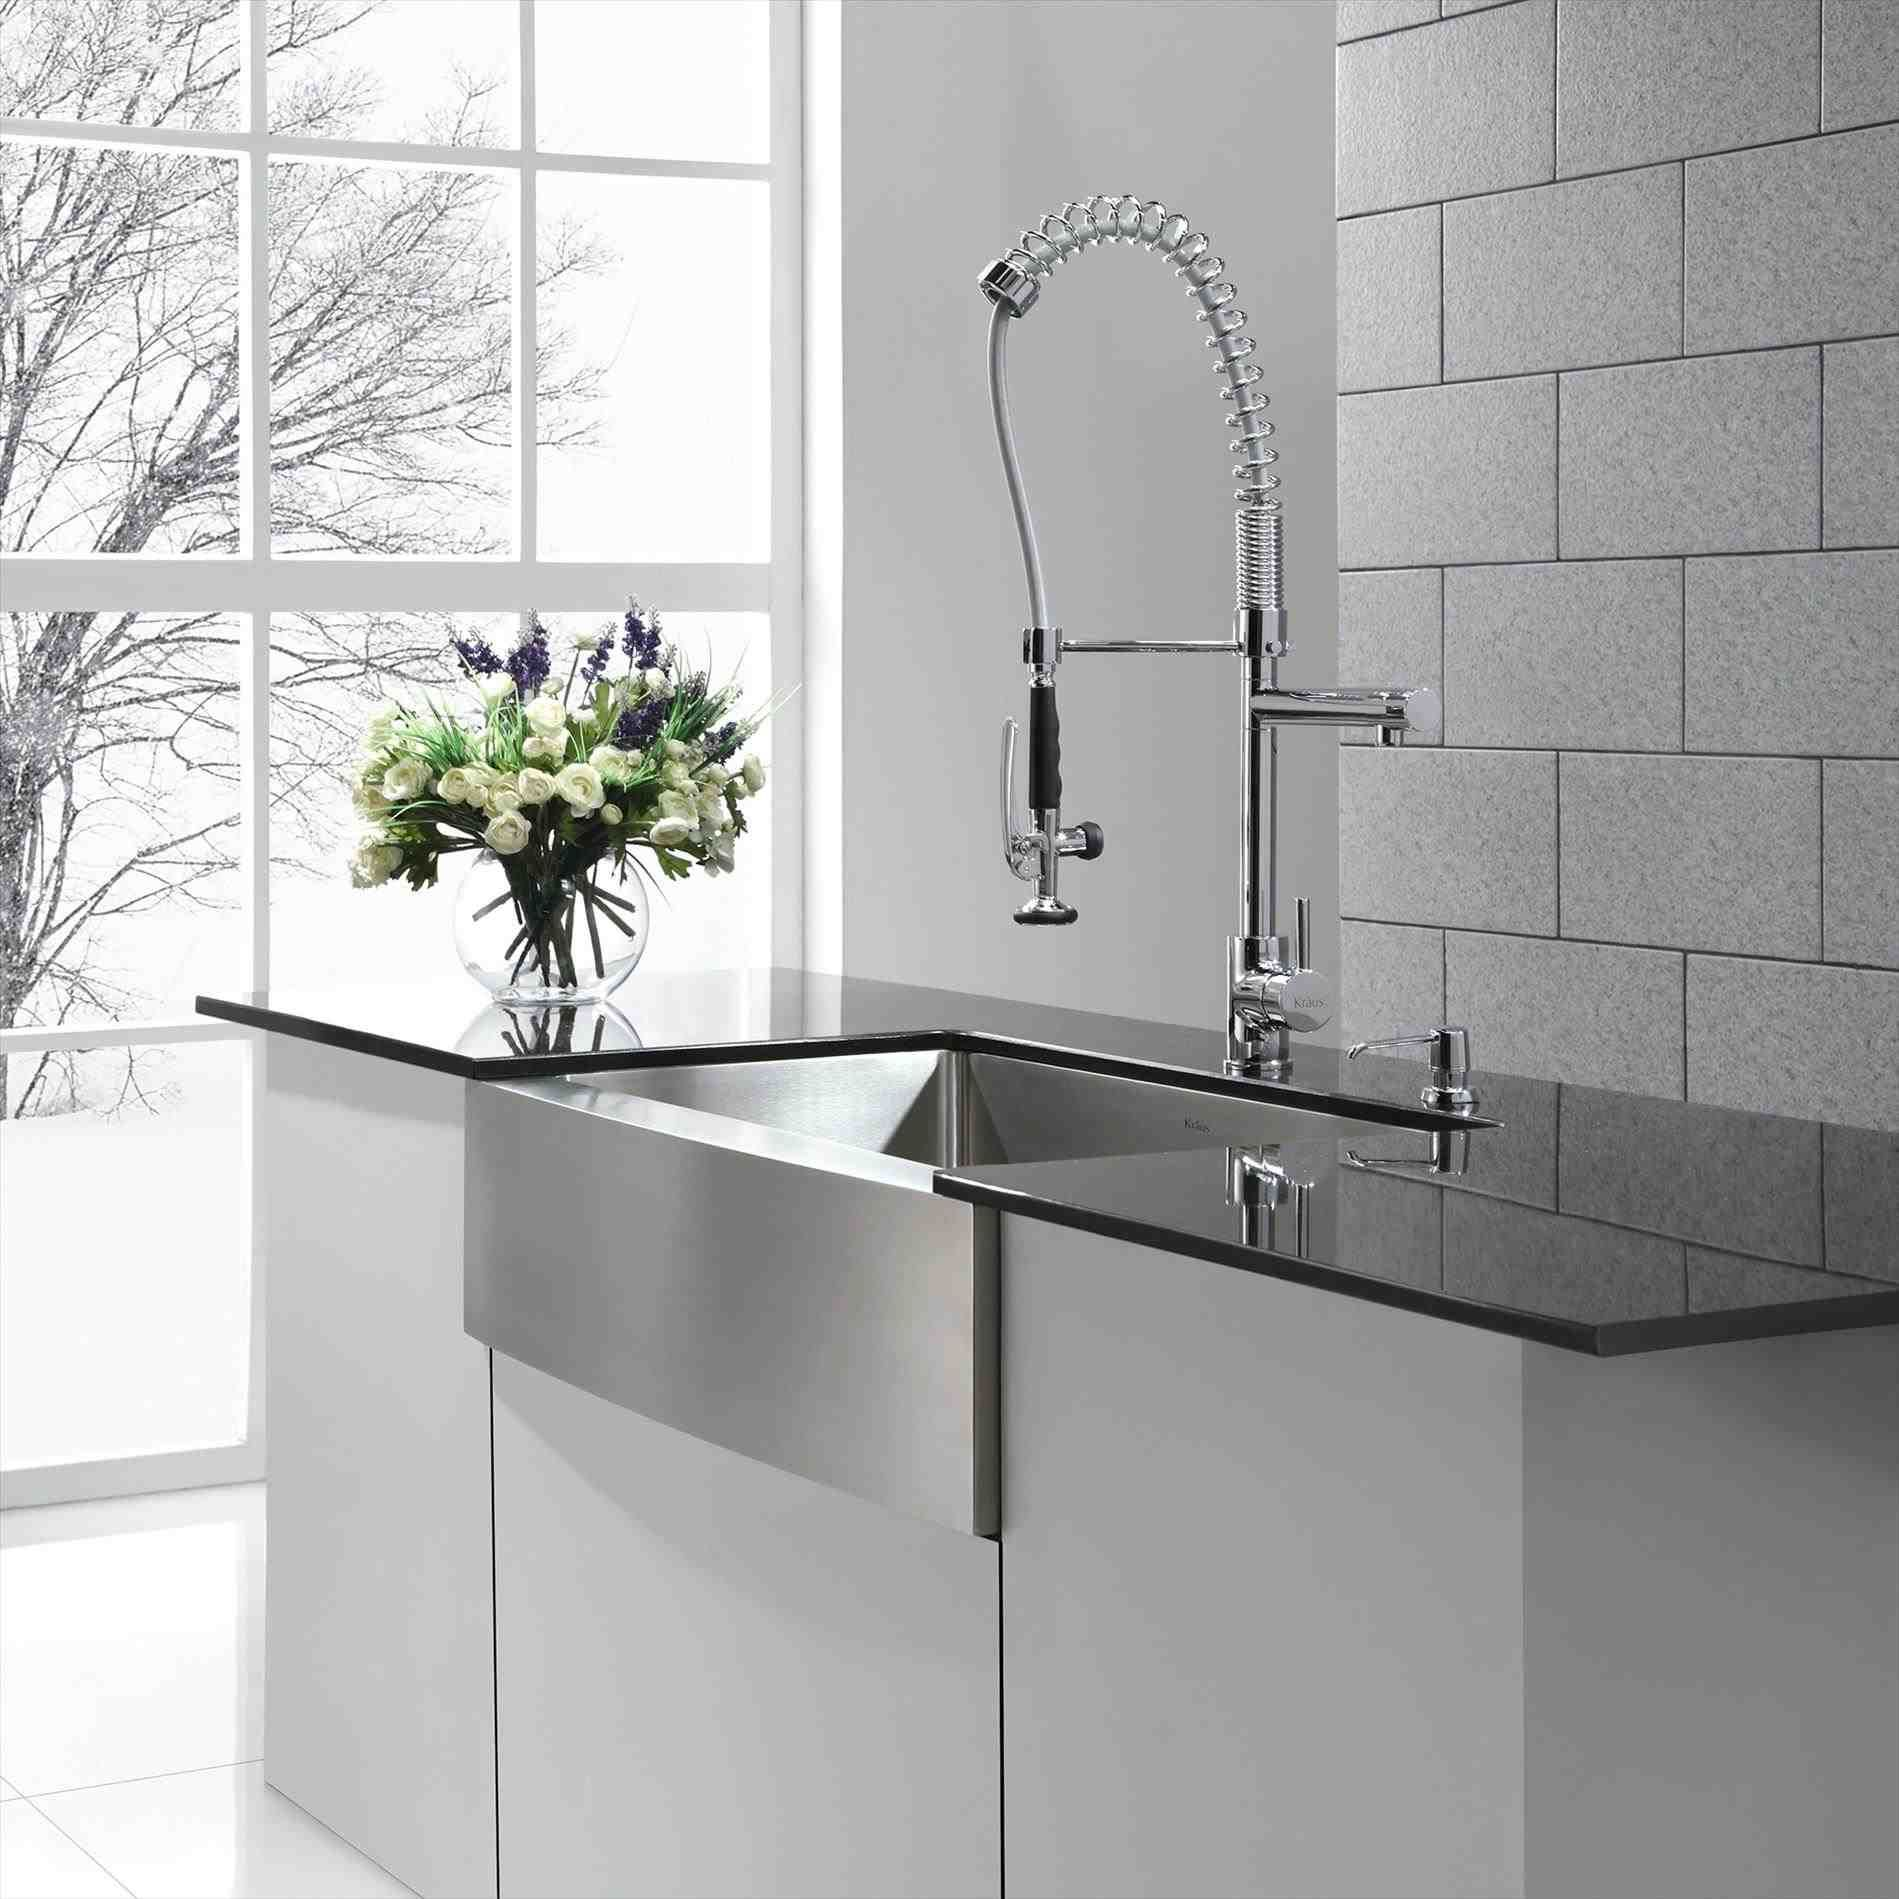 New Post kitchen sink with faucet set Decors Ideas